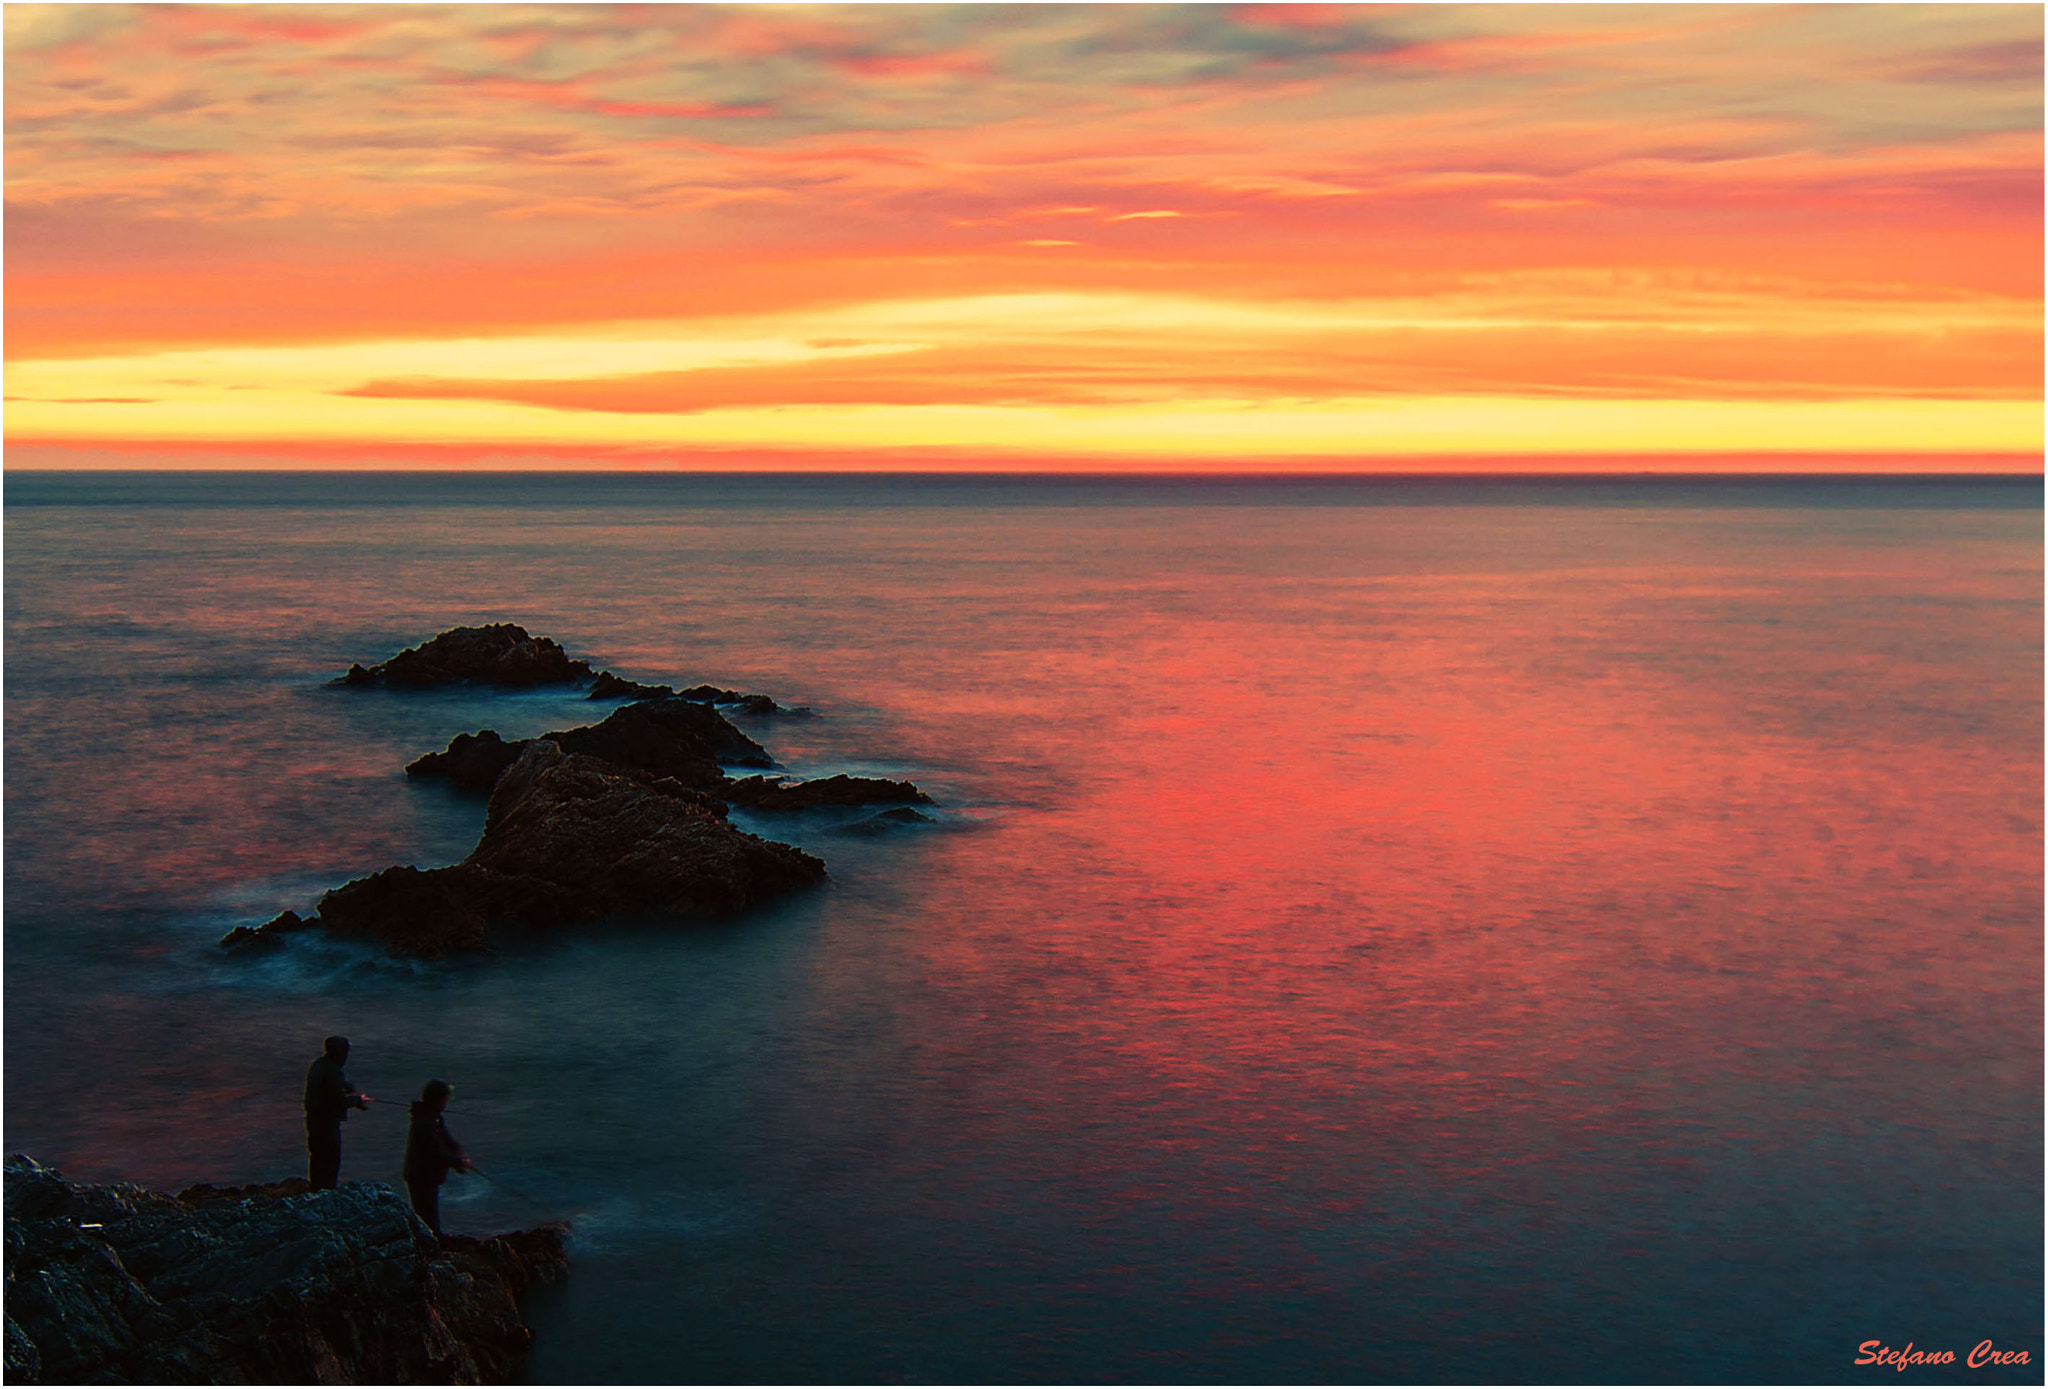 Photograph Coloured sunrise by Stefano Crea on 500px